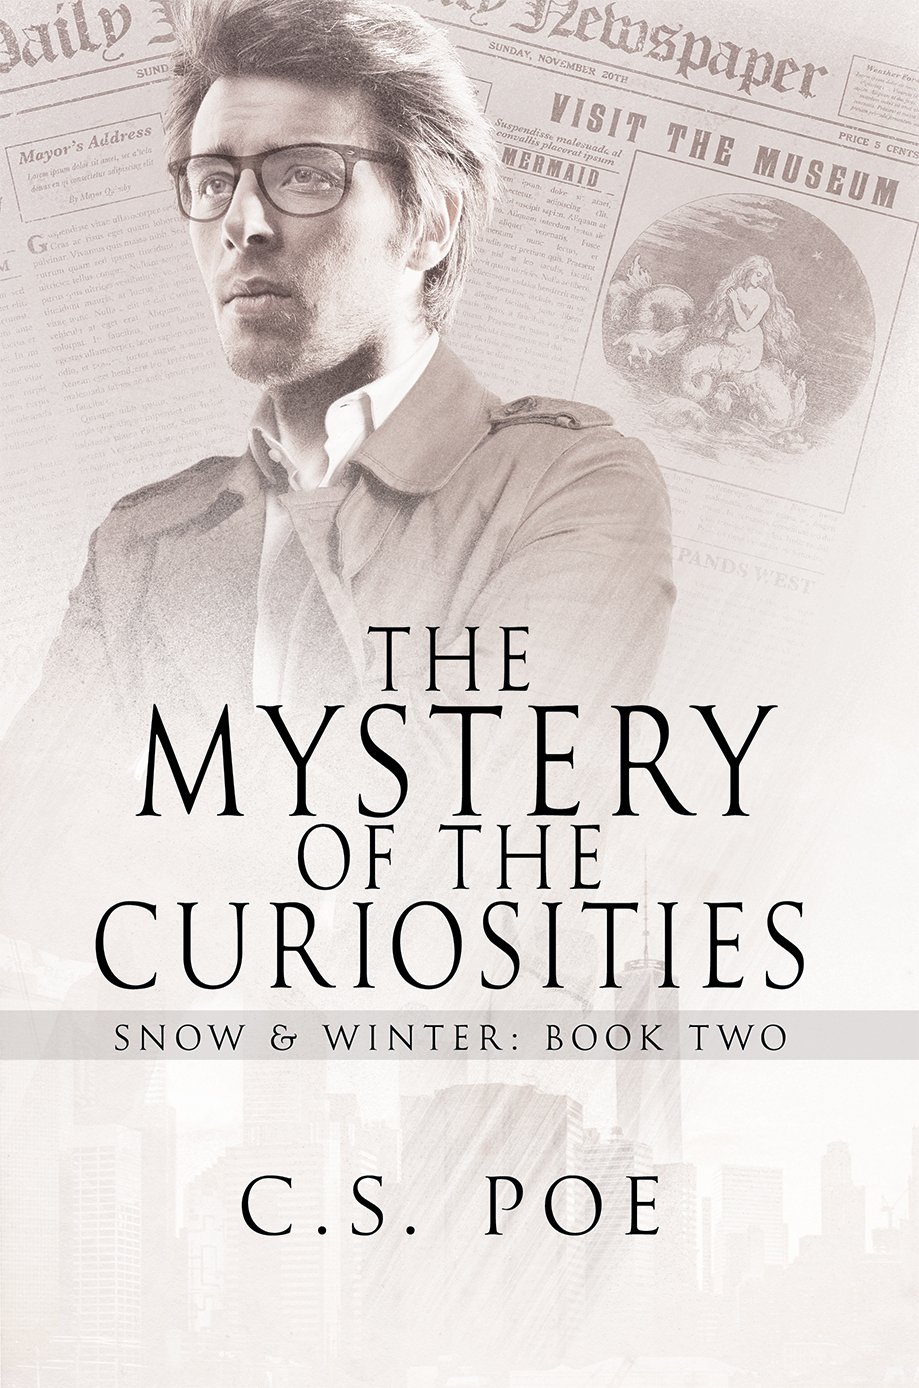 Guest Post and Giveaway: The Mystery of the Curiosities by C.S. Poe